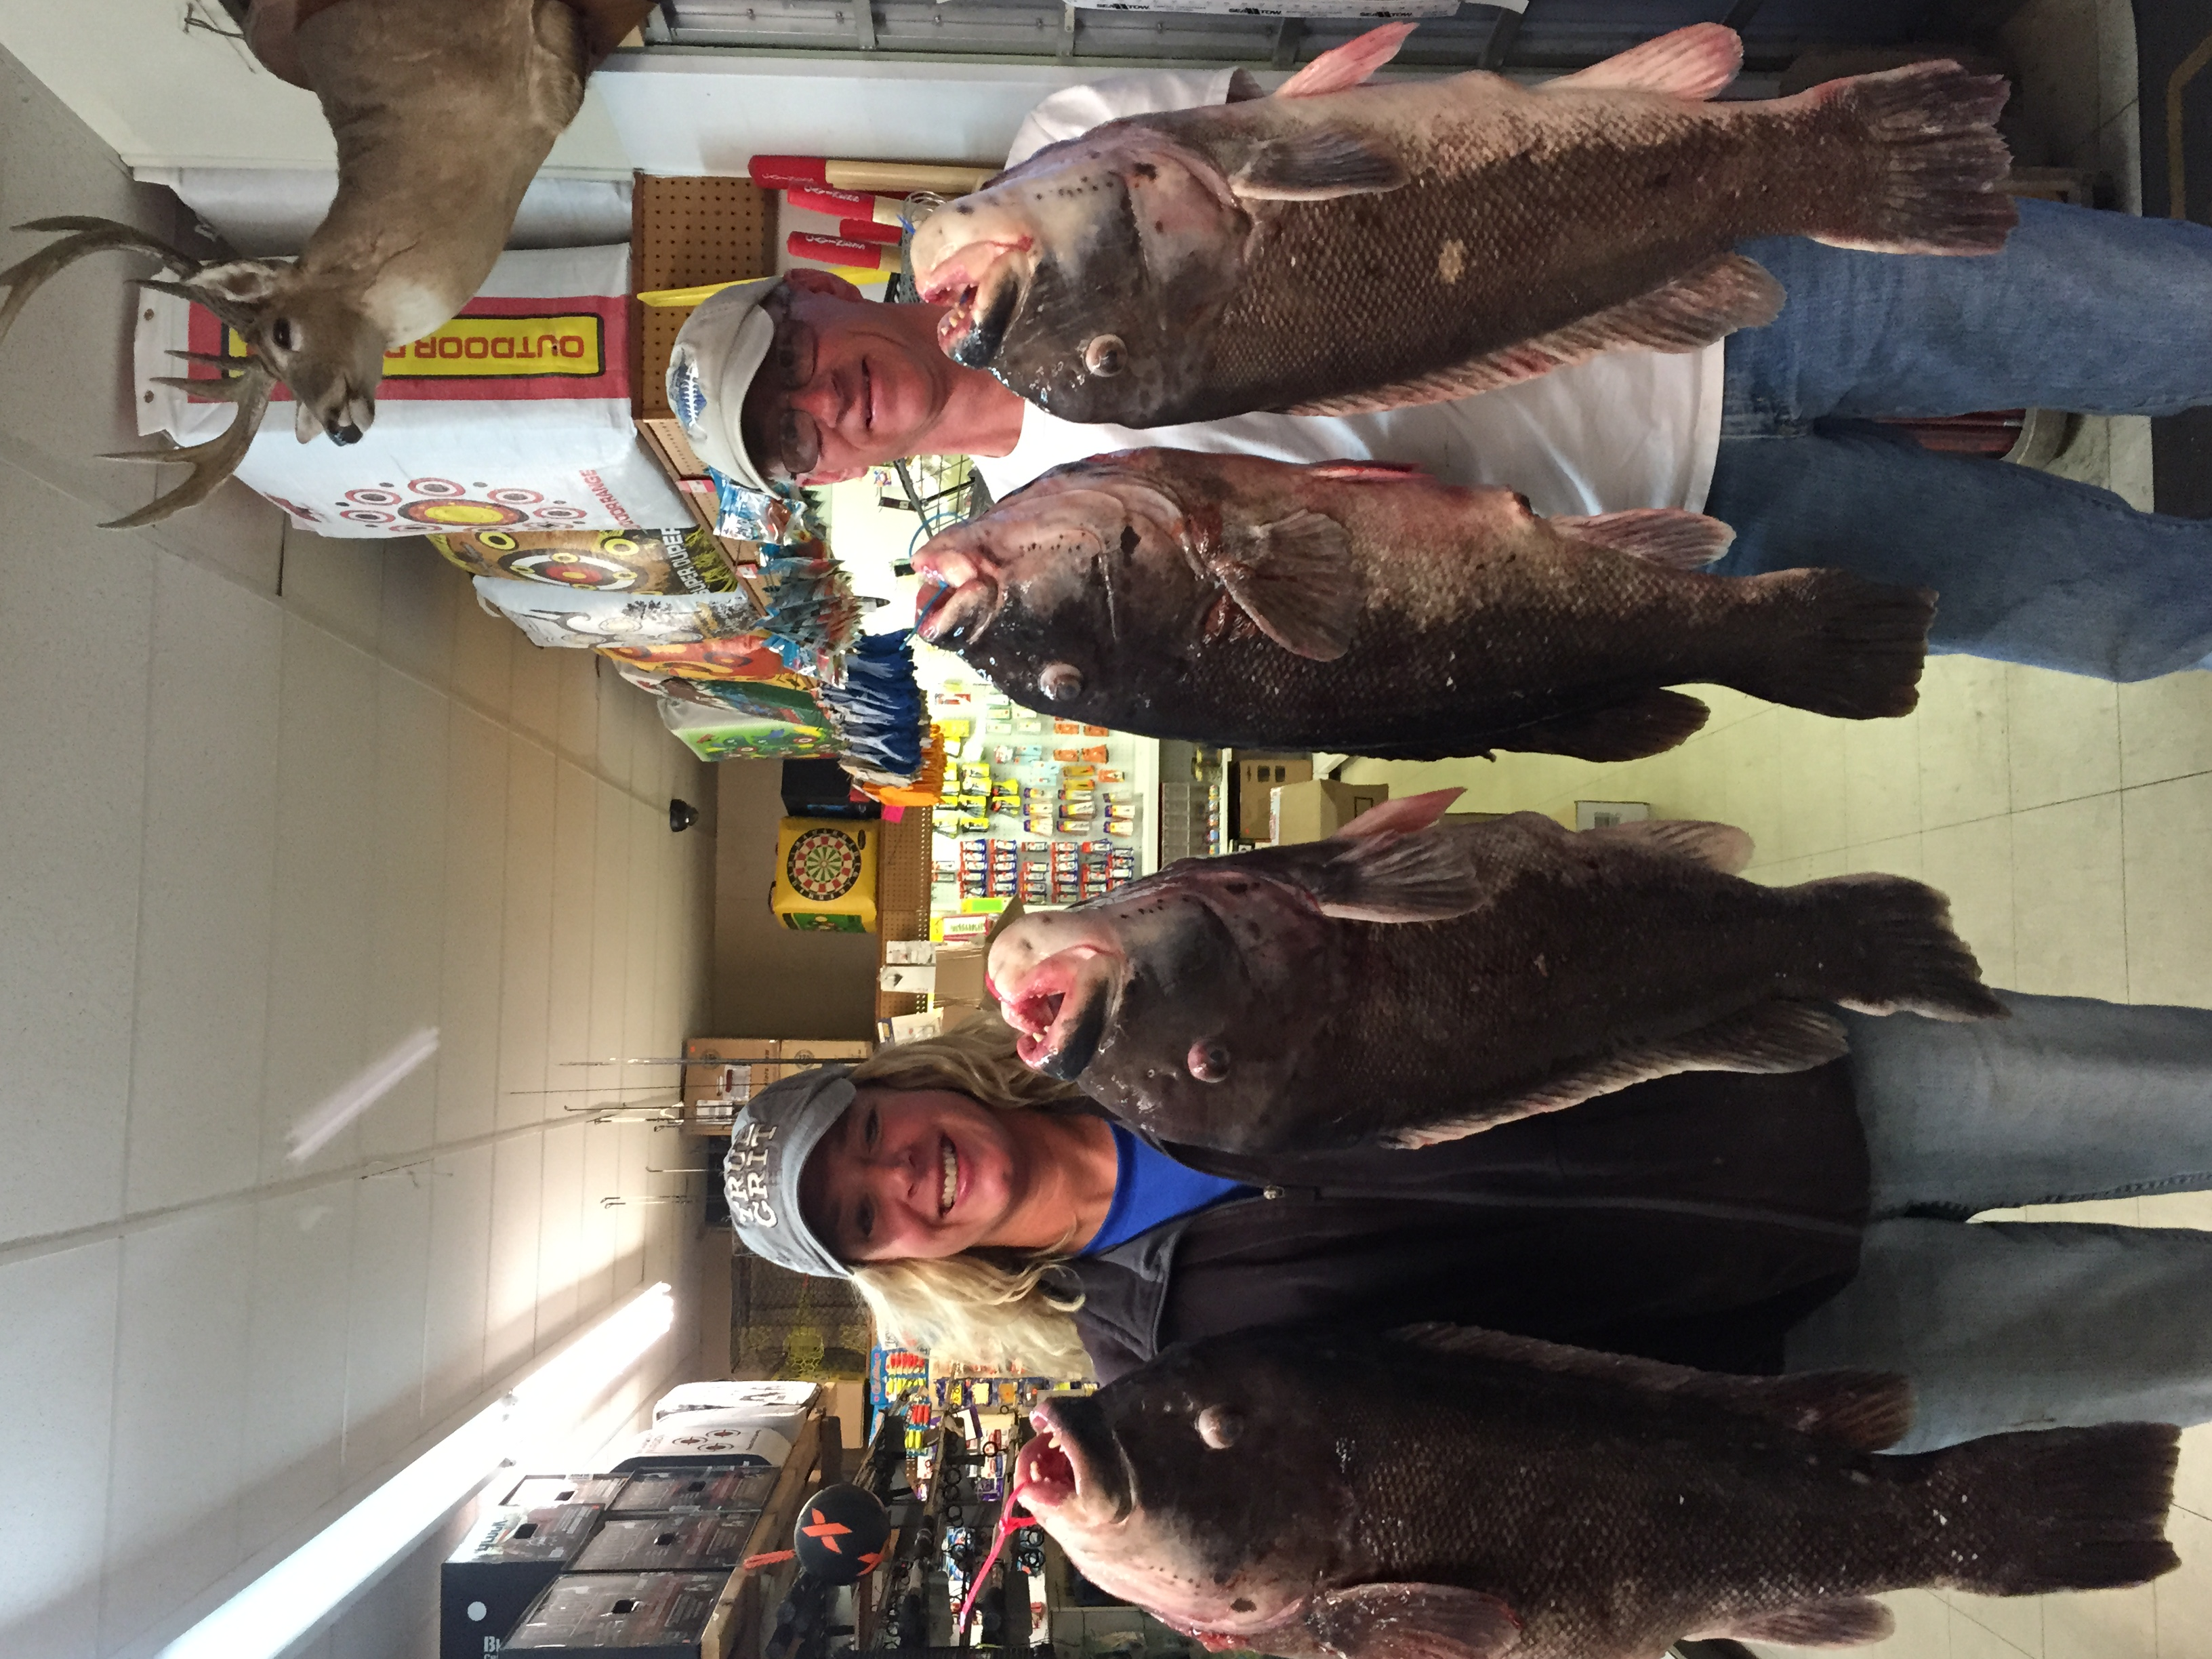 Wes Blow & Beth Synowiec caught 4 Tautog citations on4/29/15. They ranged from 16lbs 1oz to 17lbs 10oz. Congrats guys!